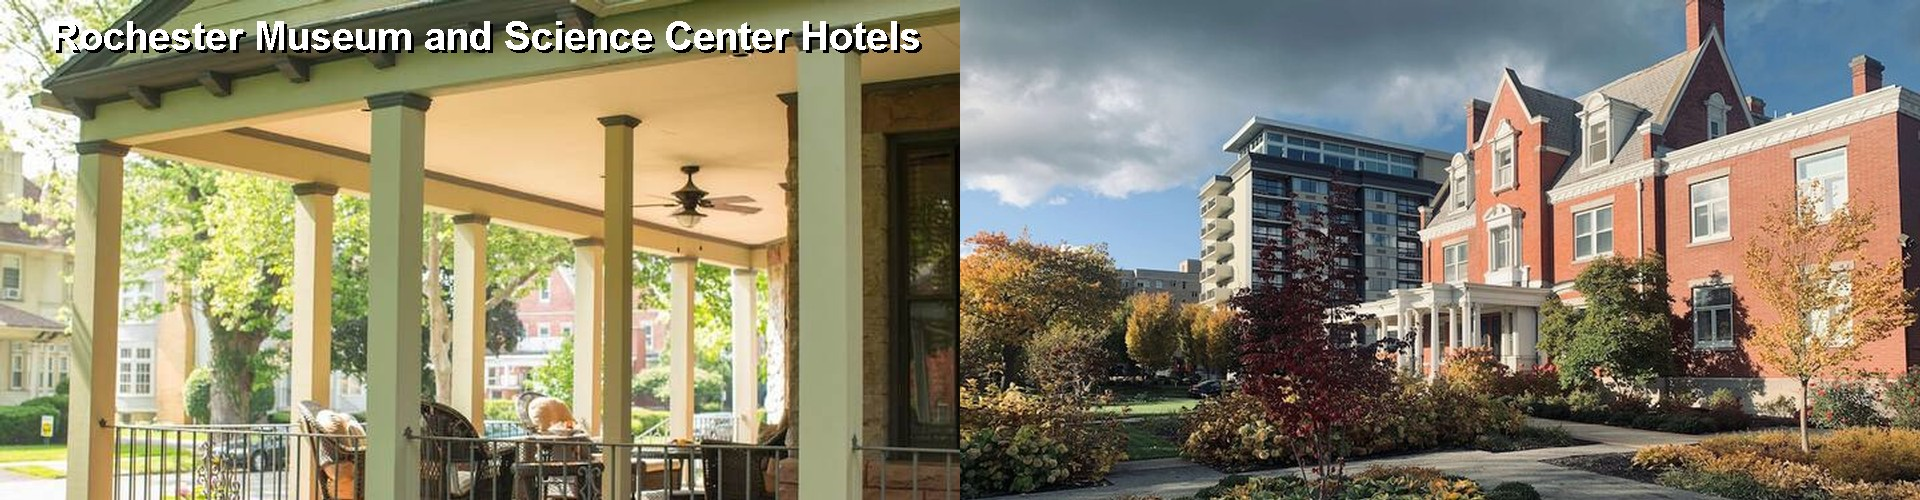 5 Best Hotels near Rochester Museum and Science Center